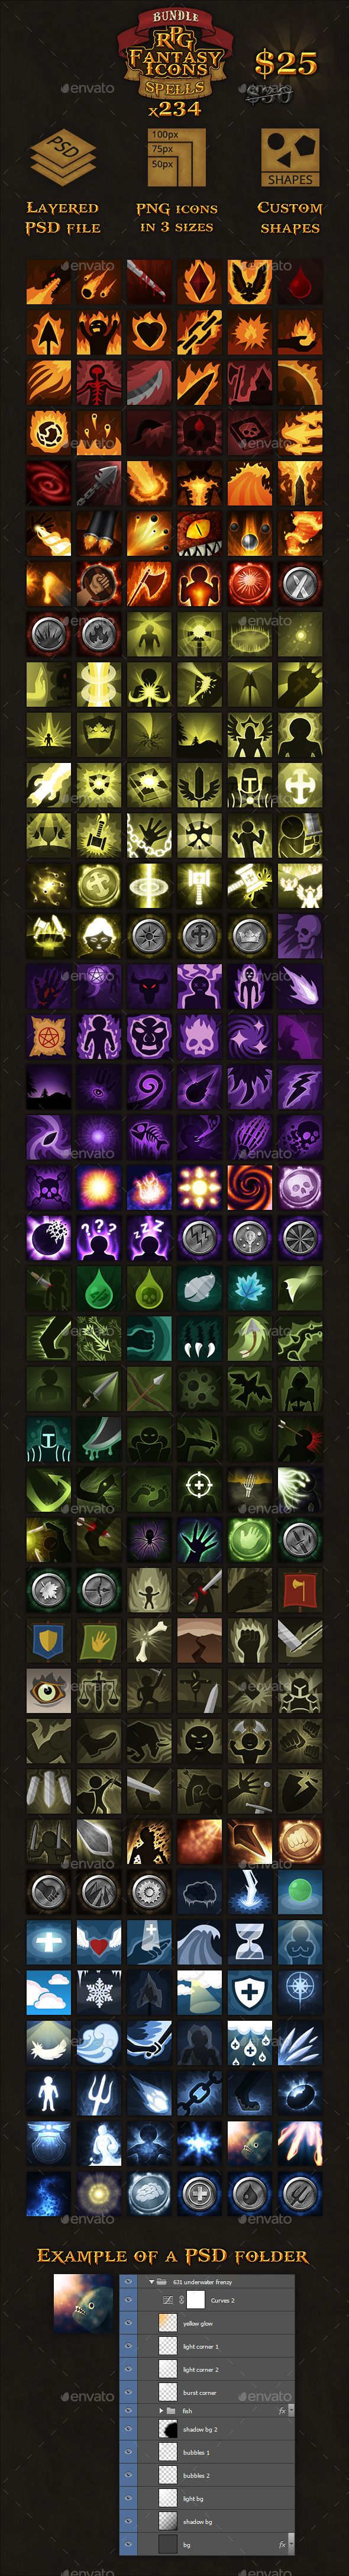 234 RPG Fantasy Spells Icons Bundle - Miscellaneous Game Assets